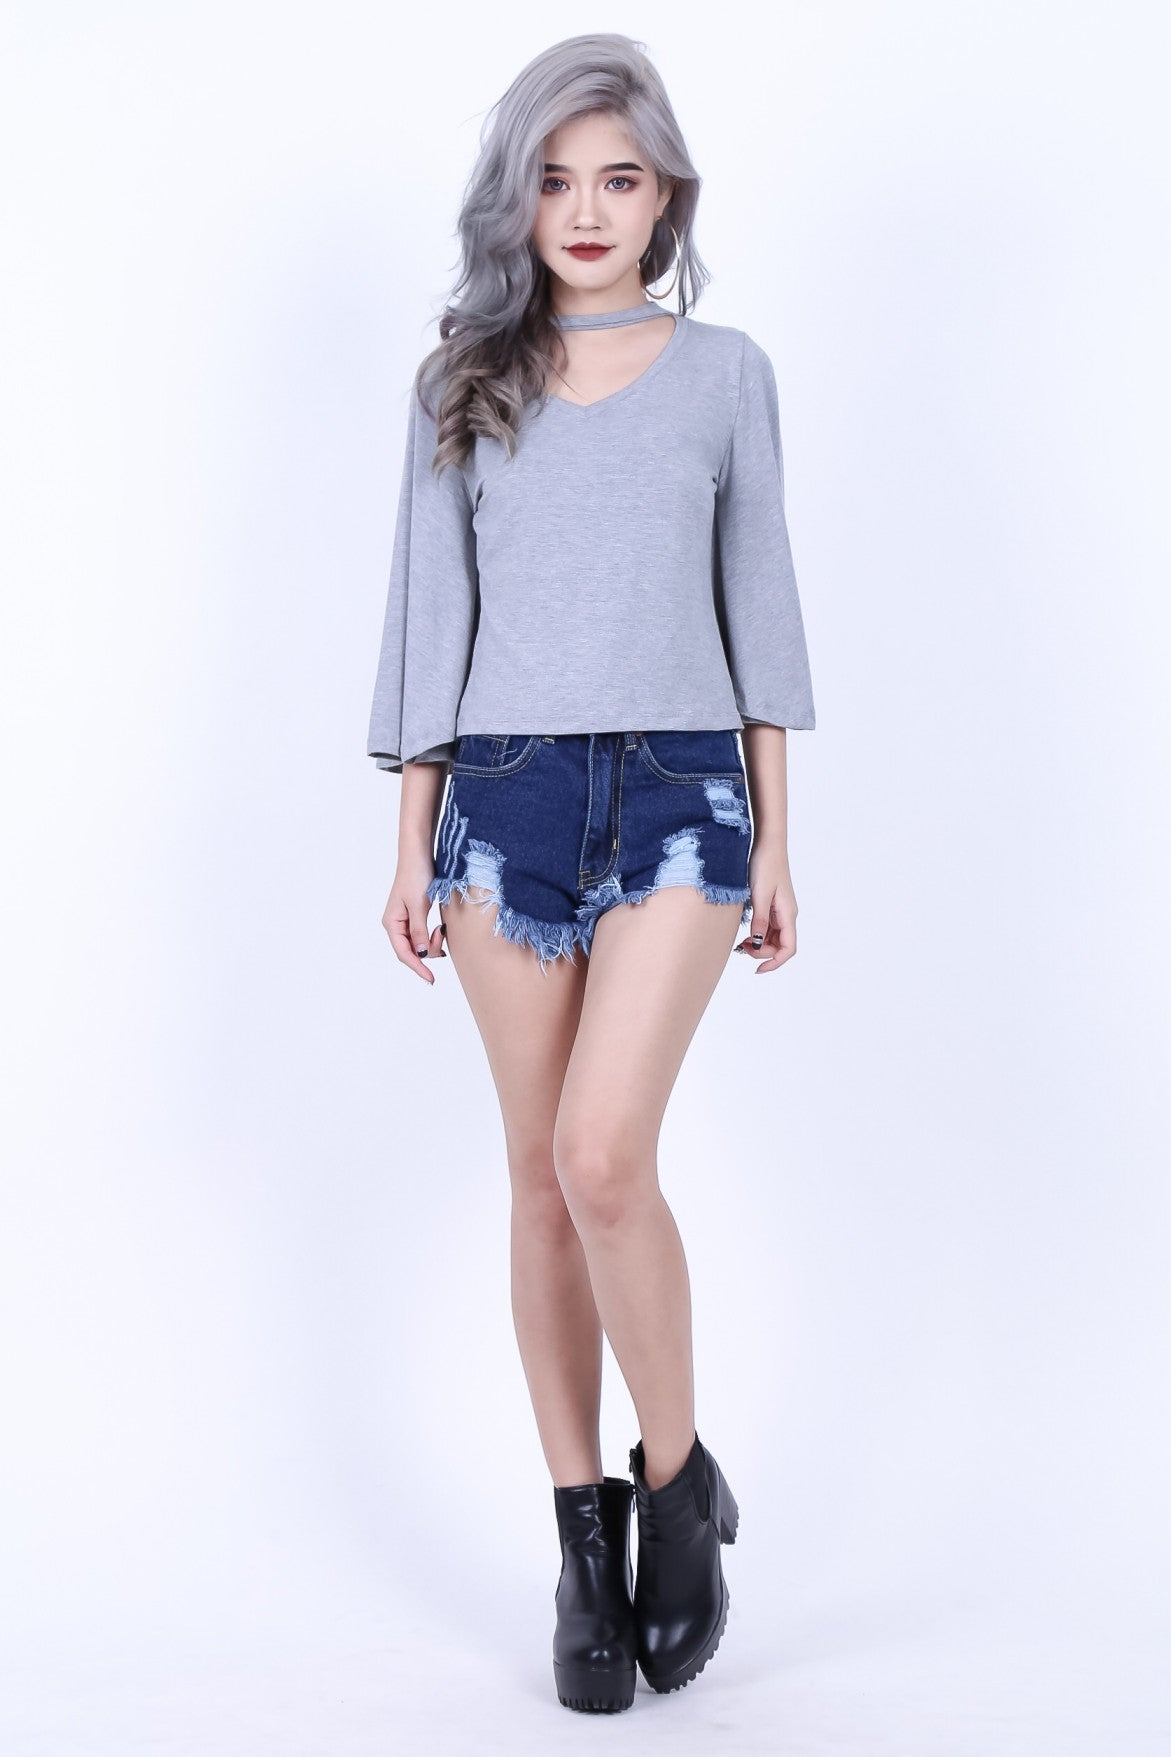 CHOKER BELL SLEEVES TOP IN LIGHT GREY - TOPAZETTE